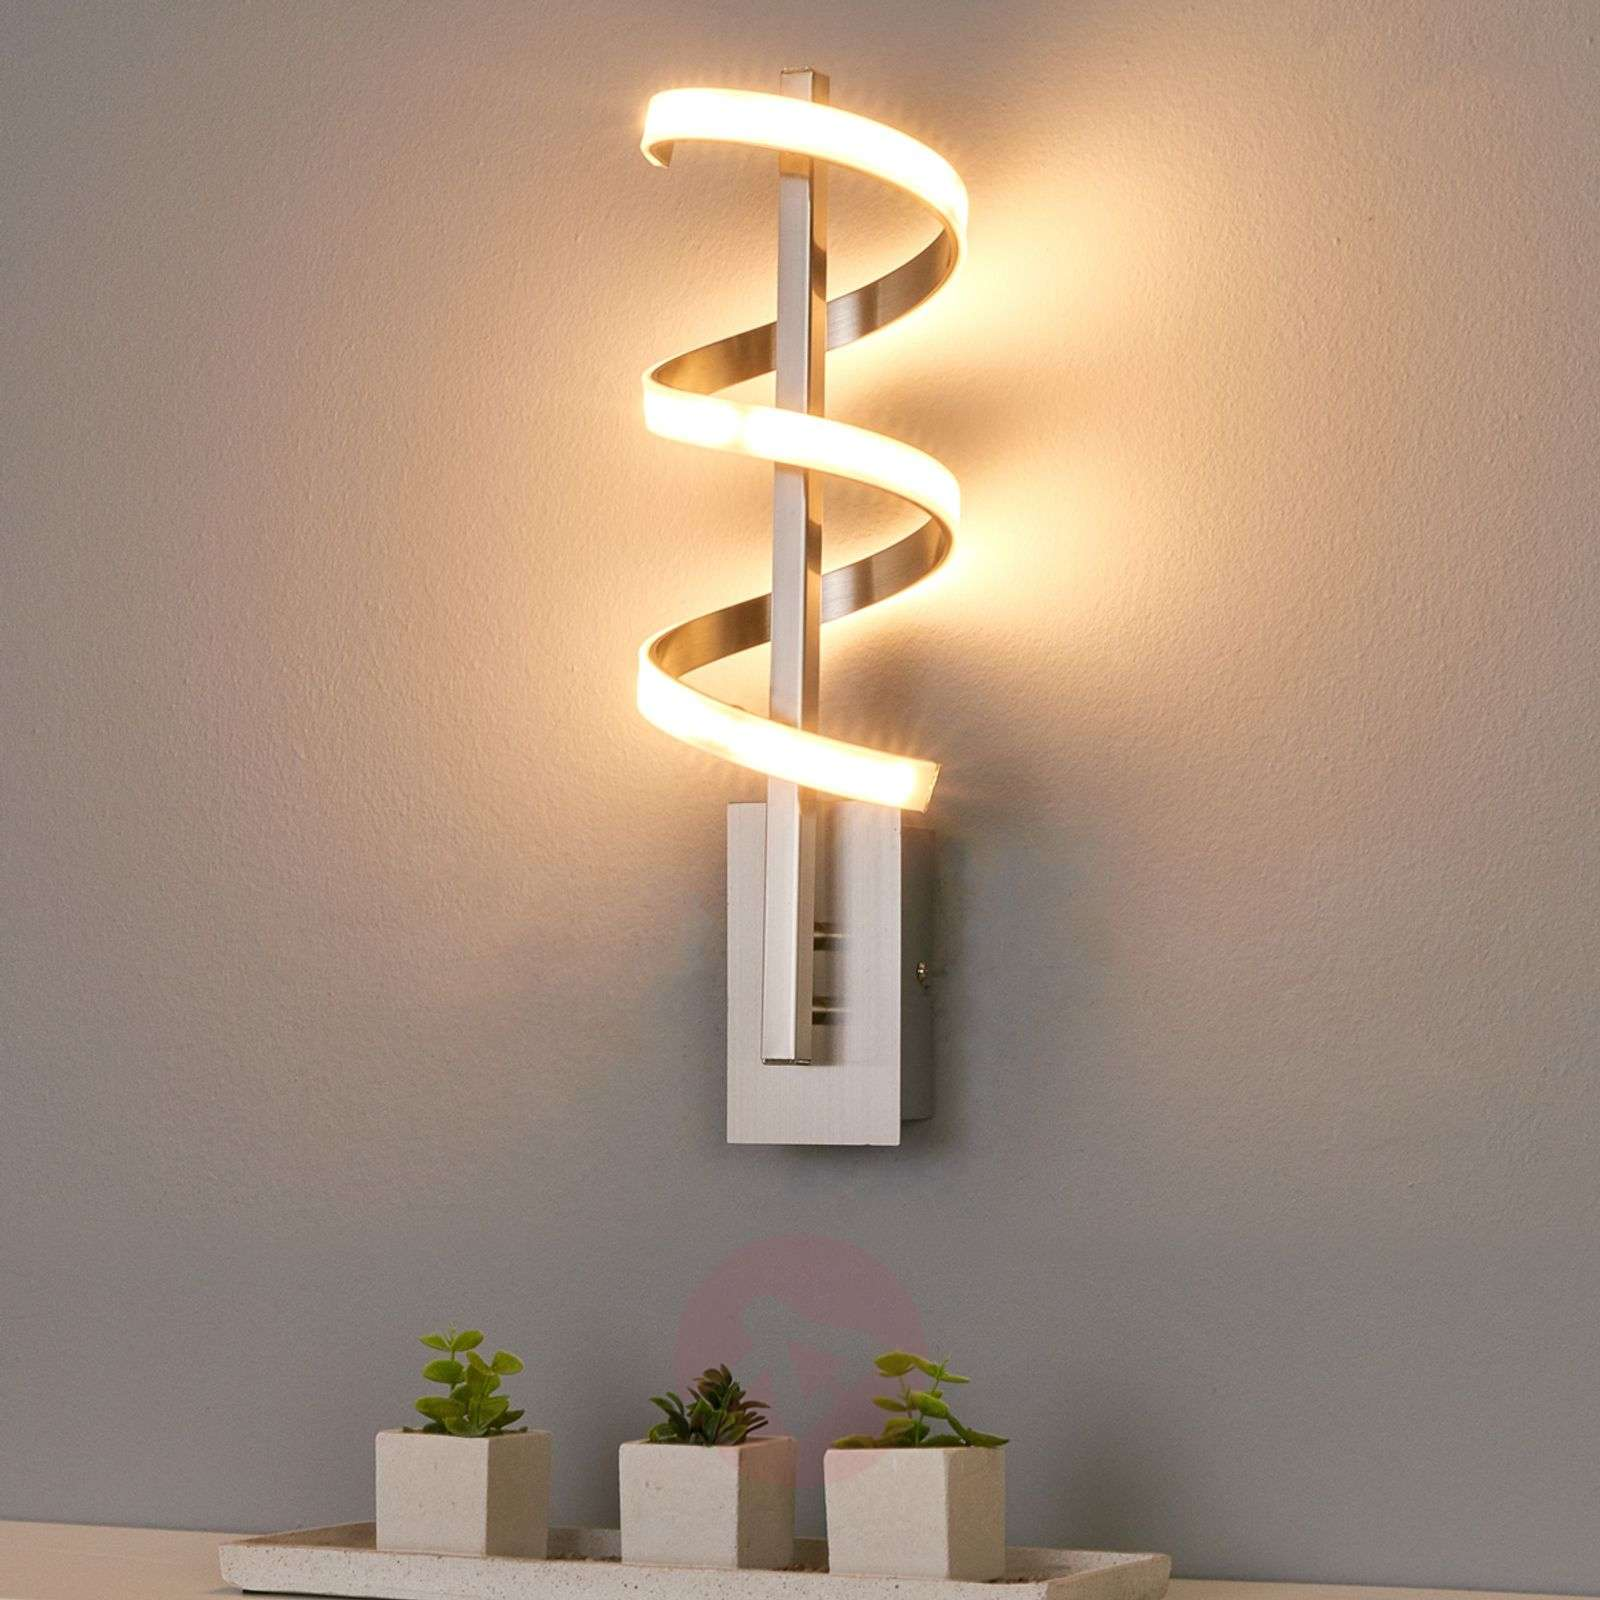 Lámpara de pared LED torcida Pierre-9985029-01